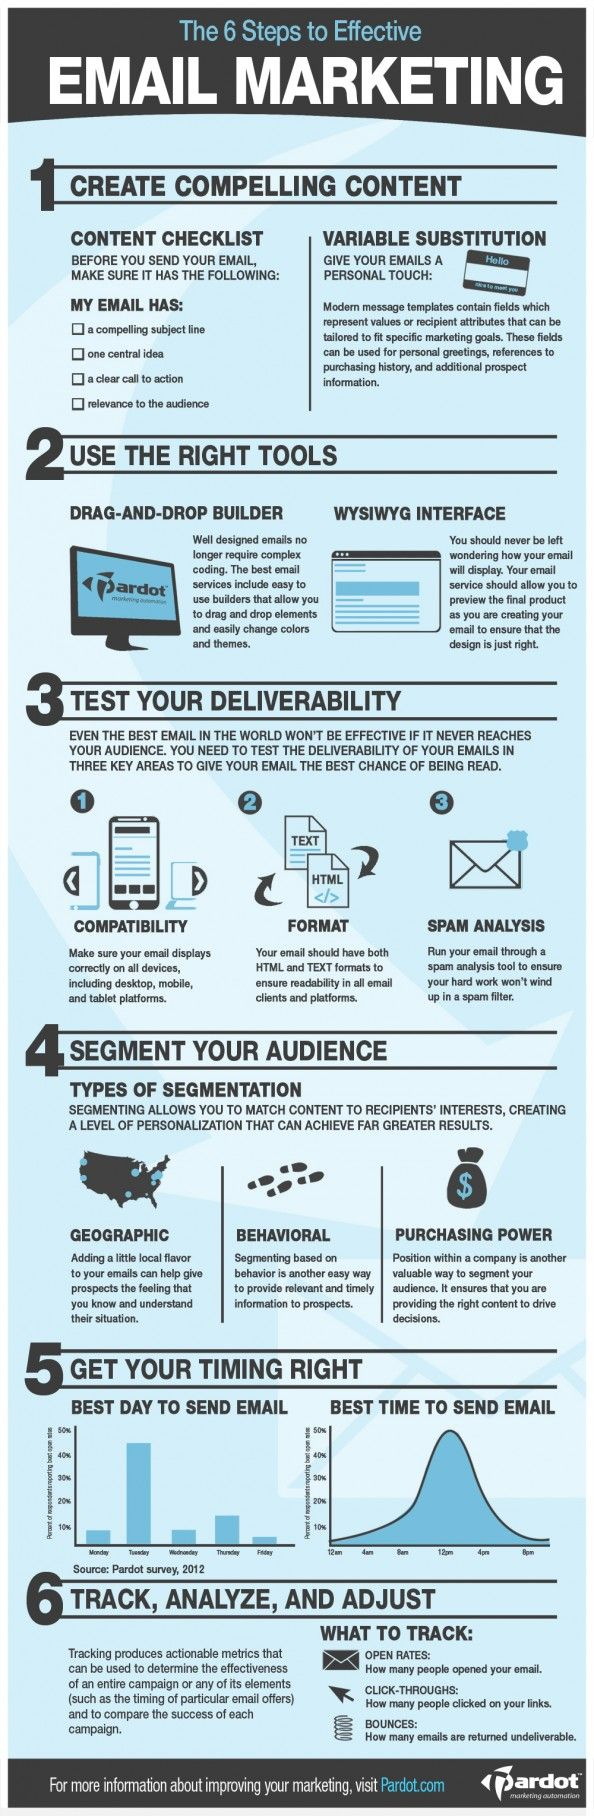 6 Steps to Effective Email Marketing  #infographic www.socialmediamamma.com